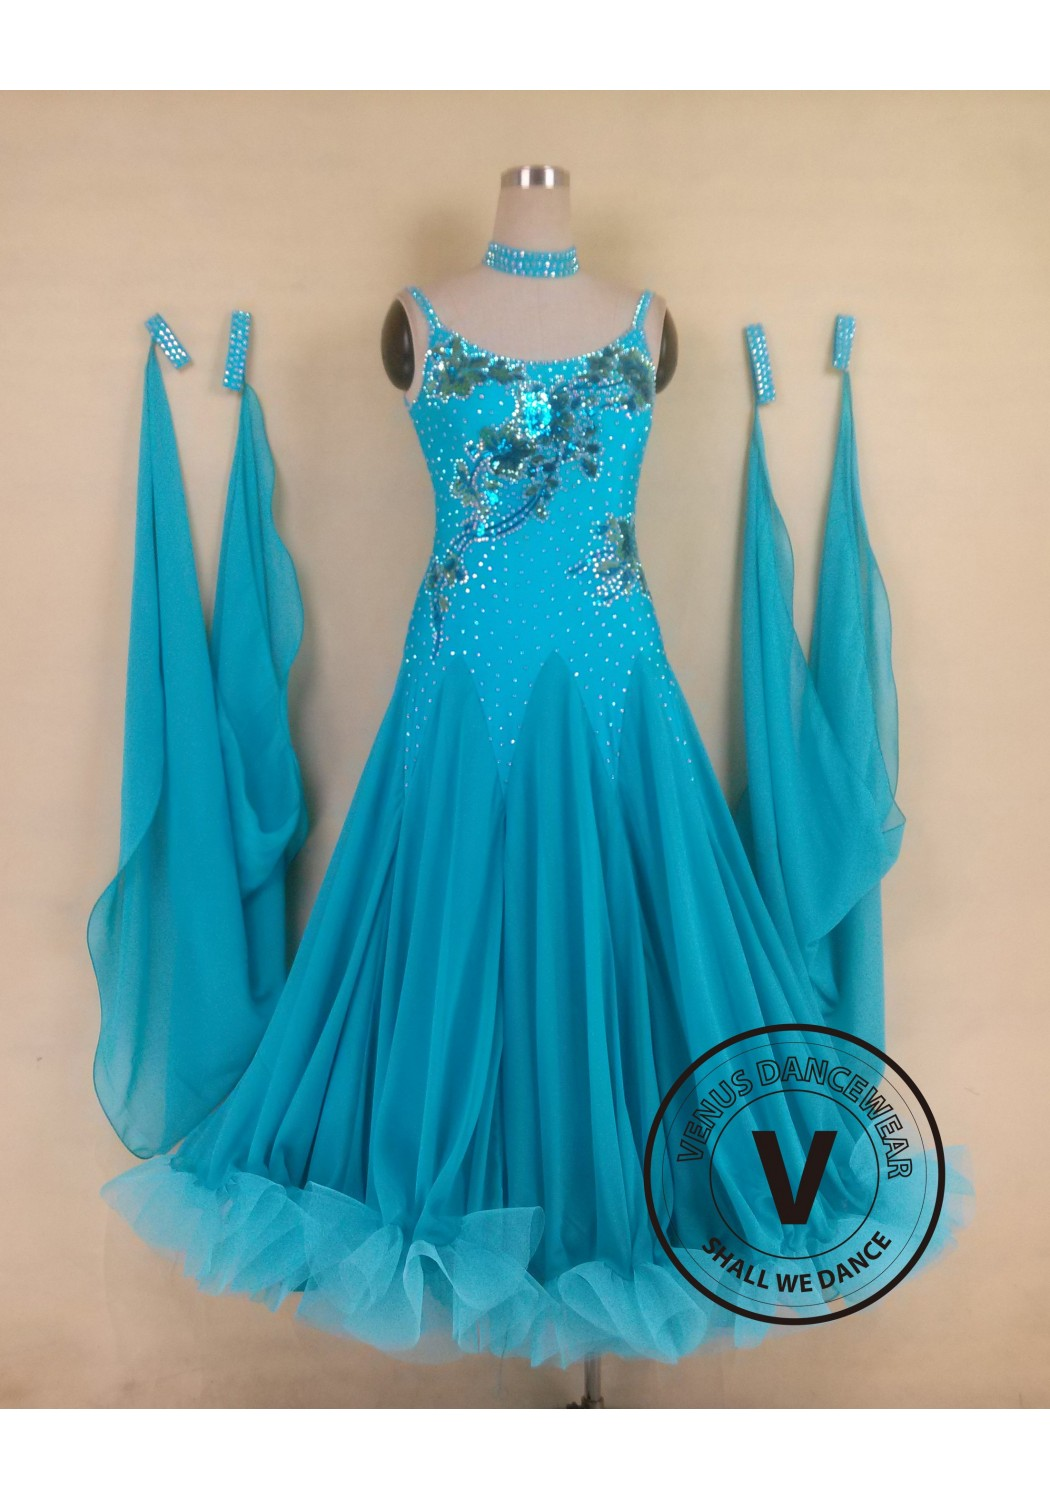 Standard Competition Ballroom Dress US43